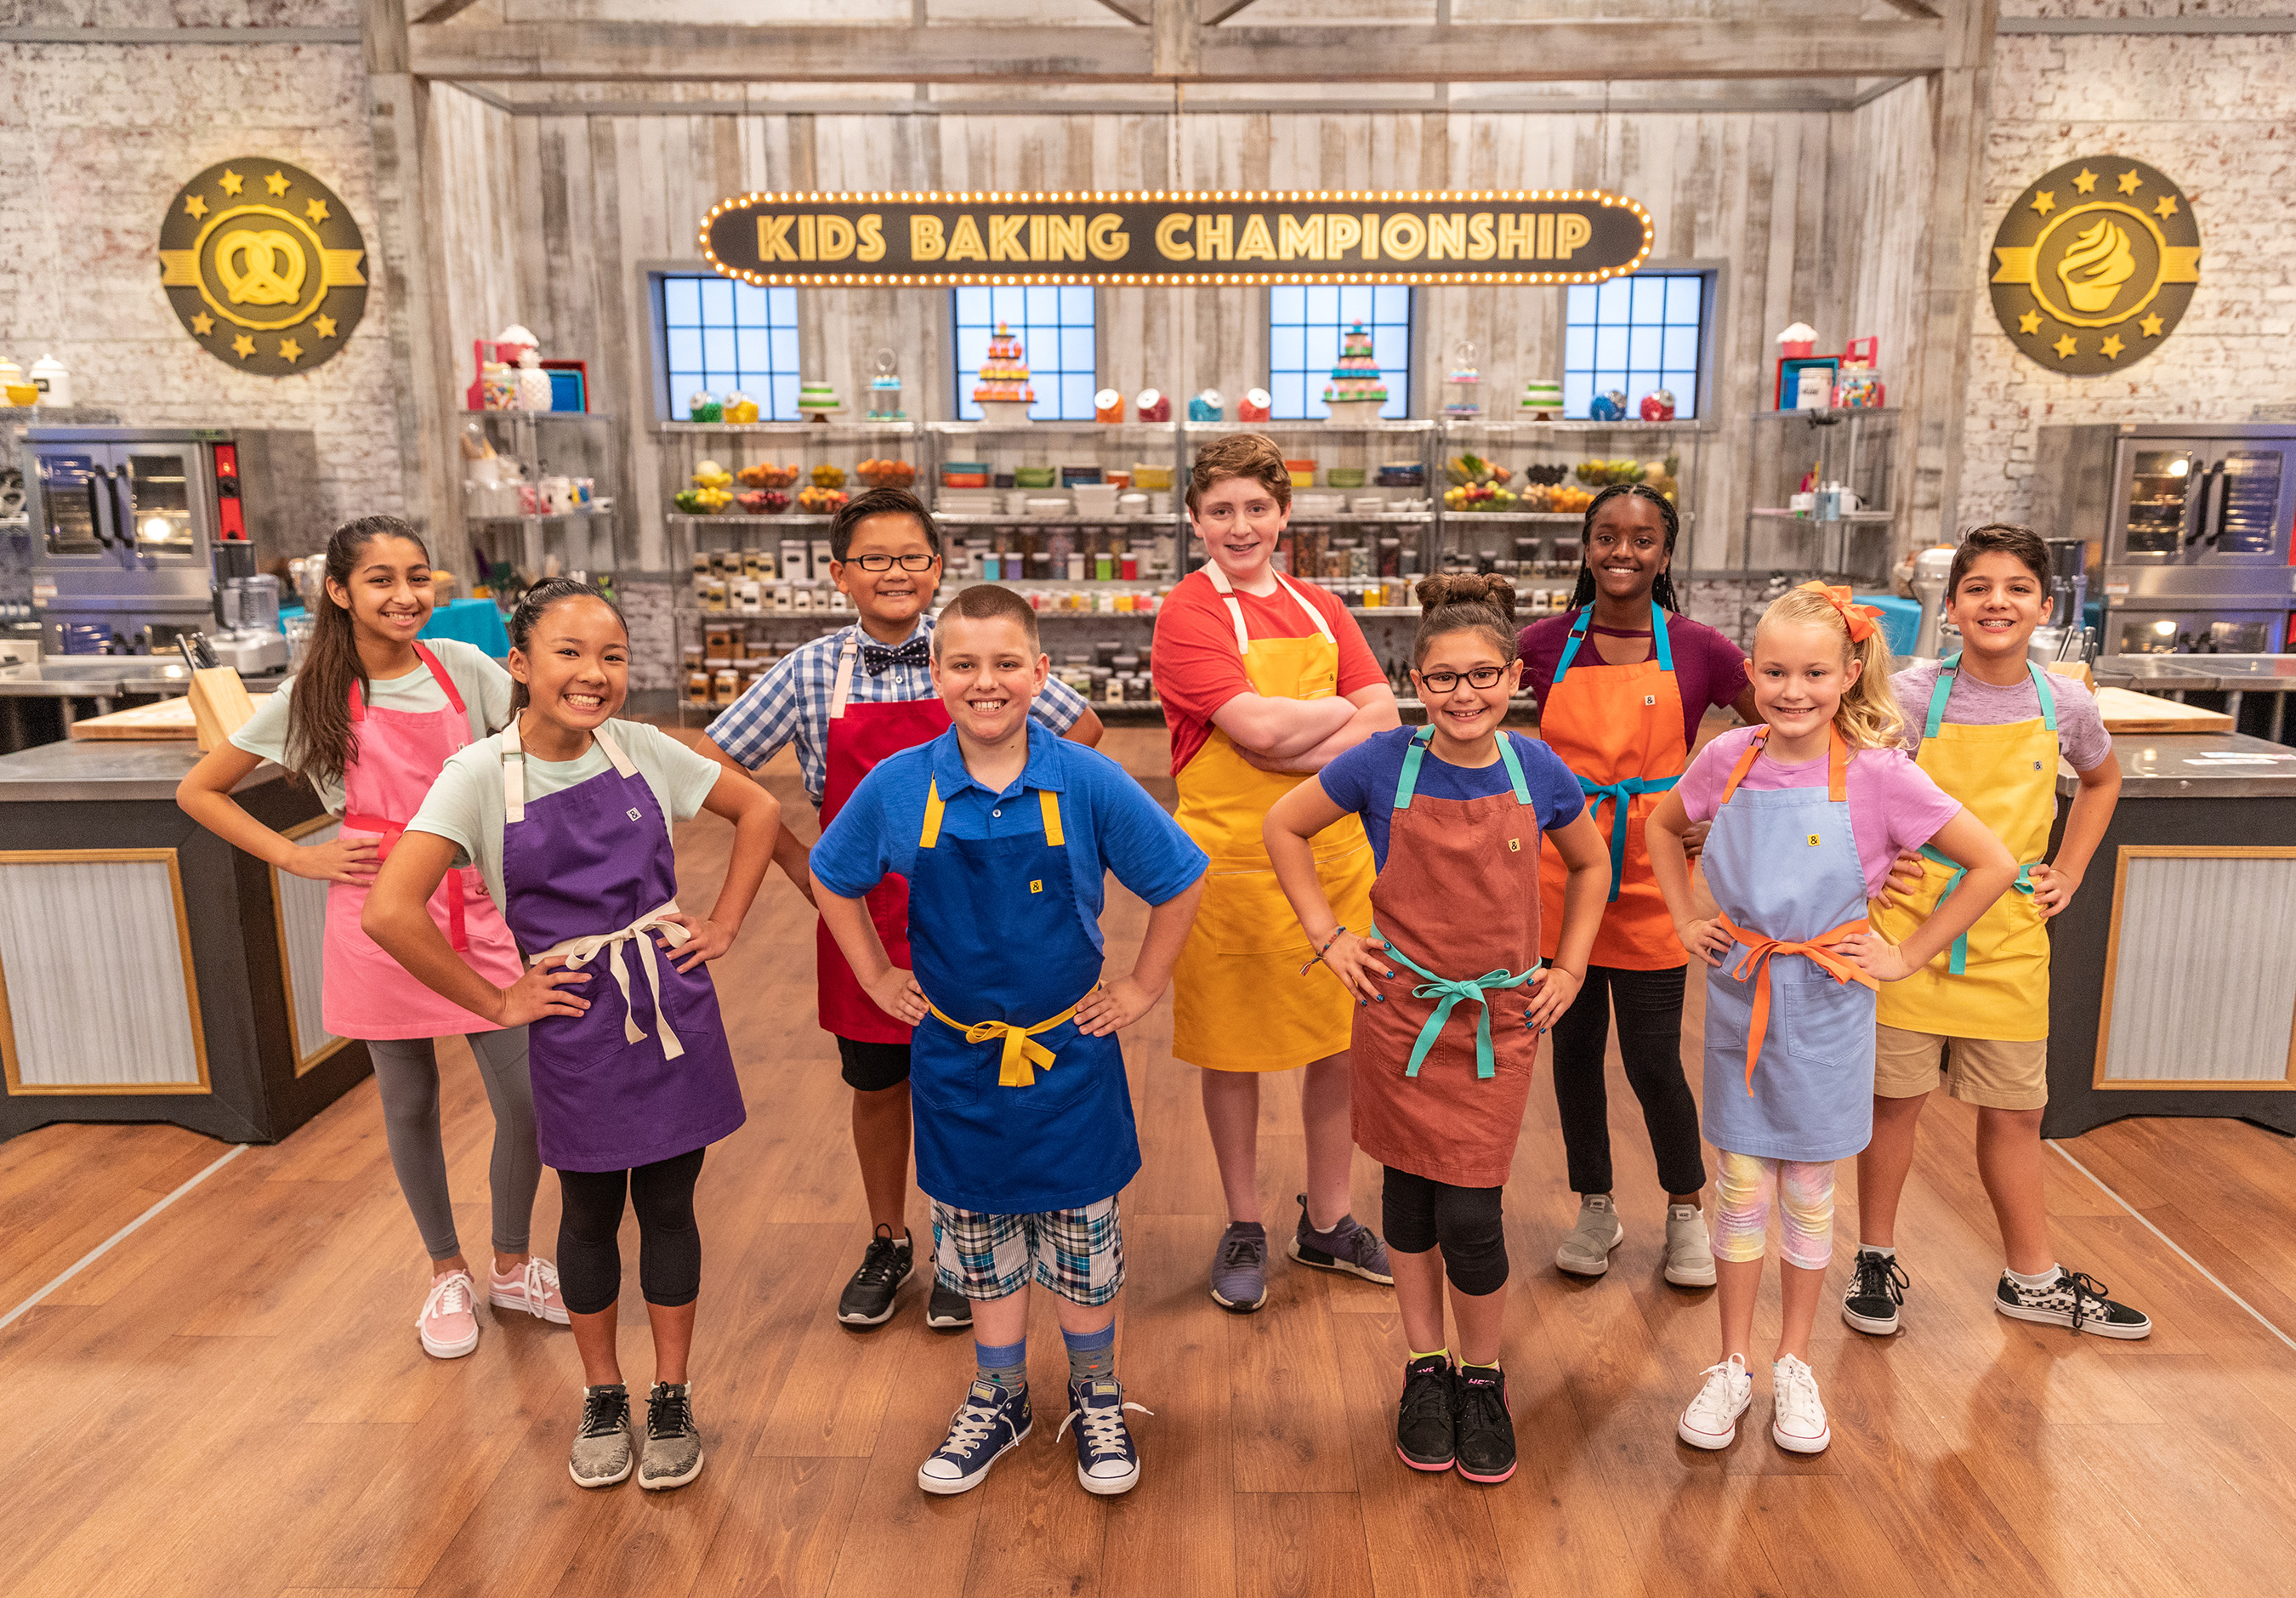 The contestants on Food Network's Kids Baking Championship